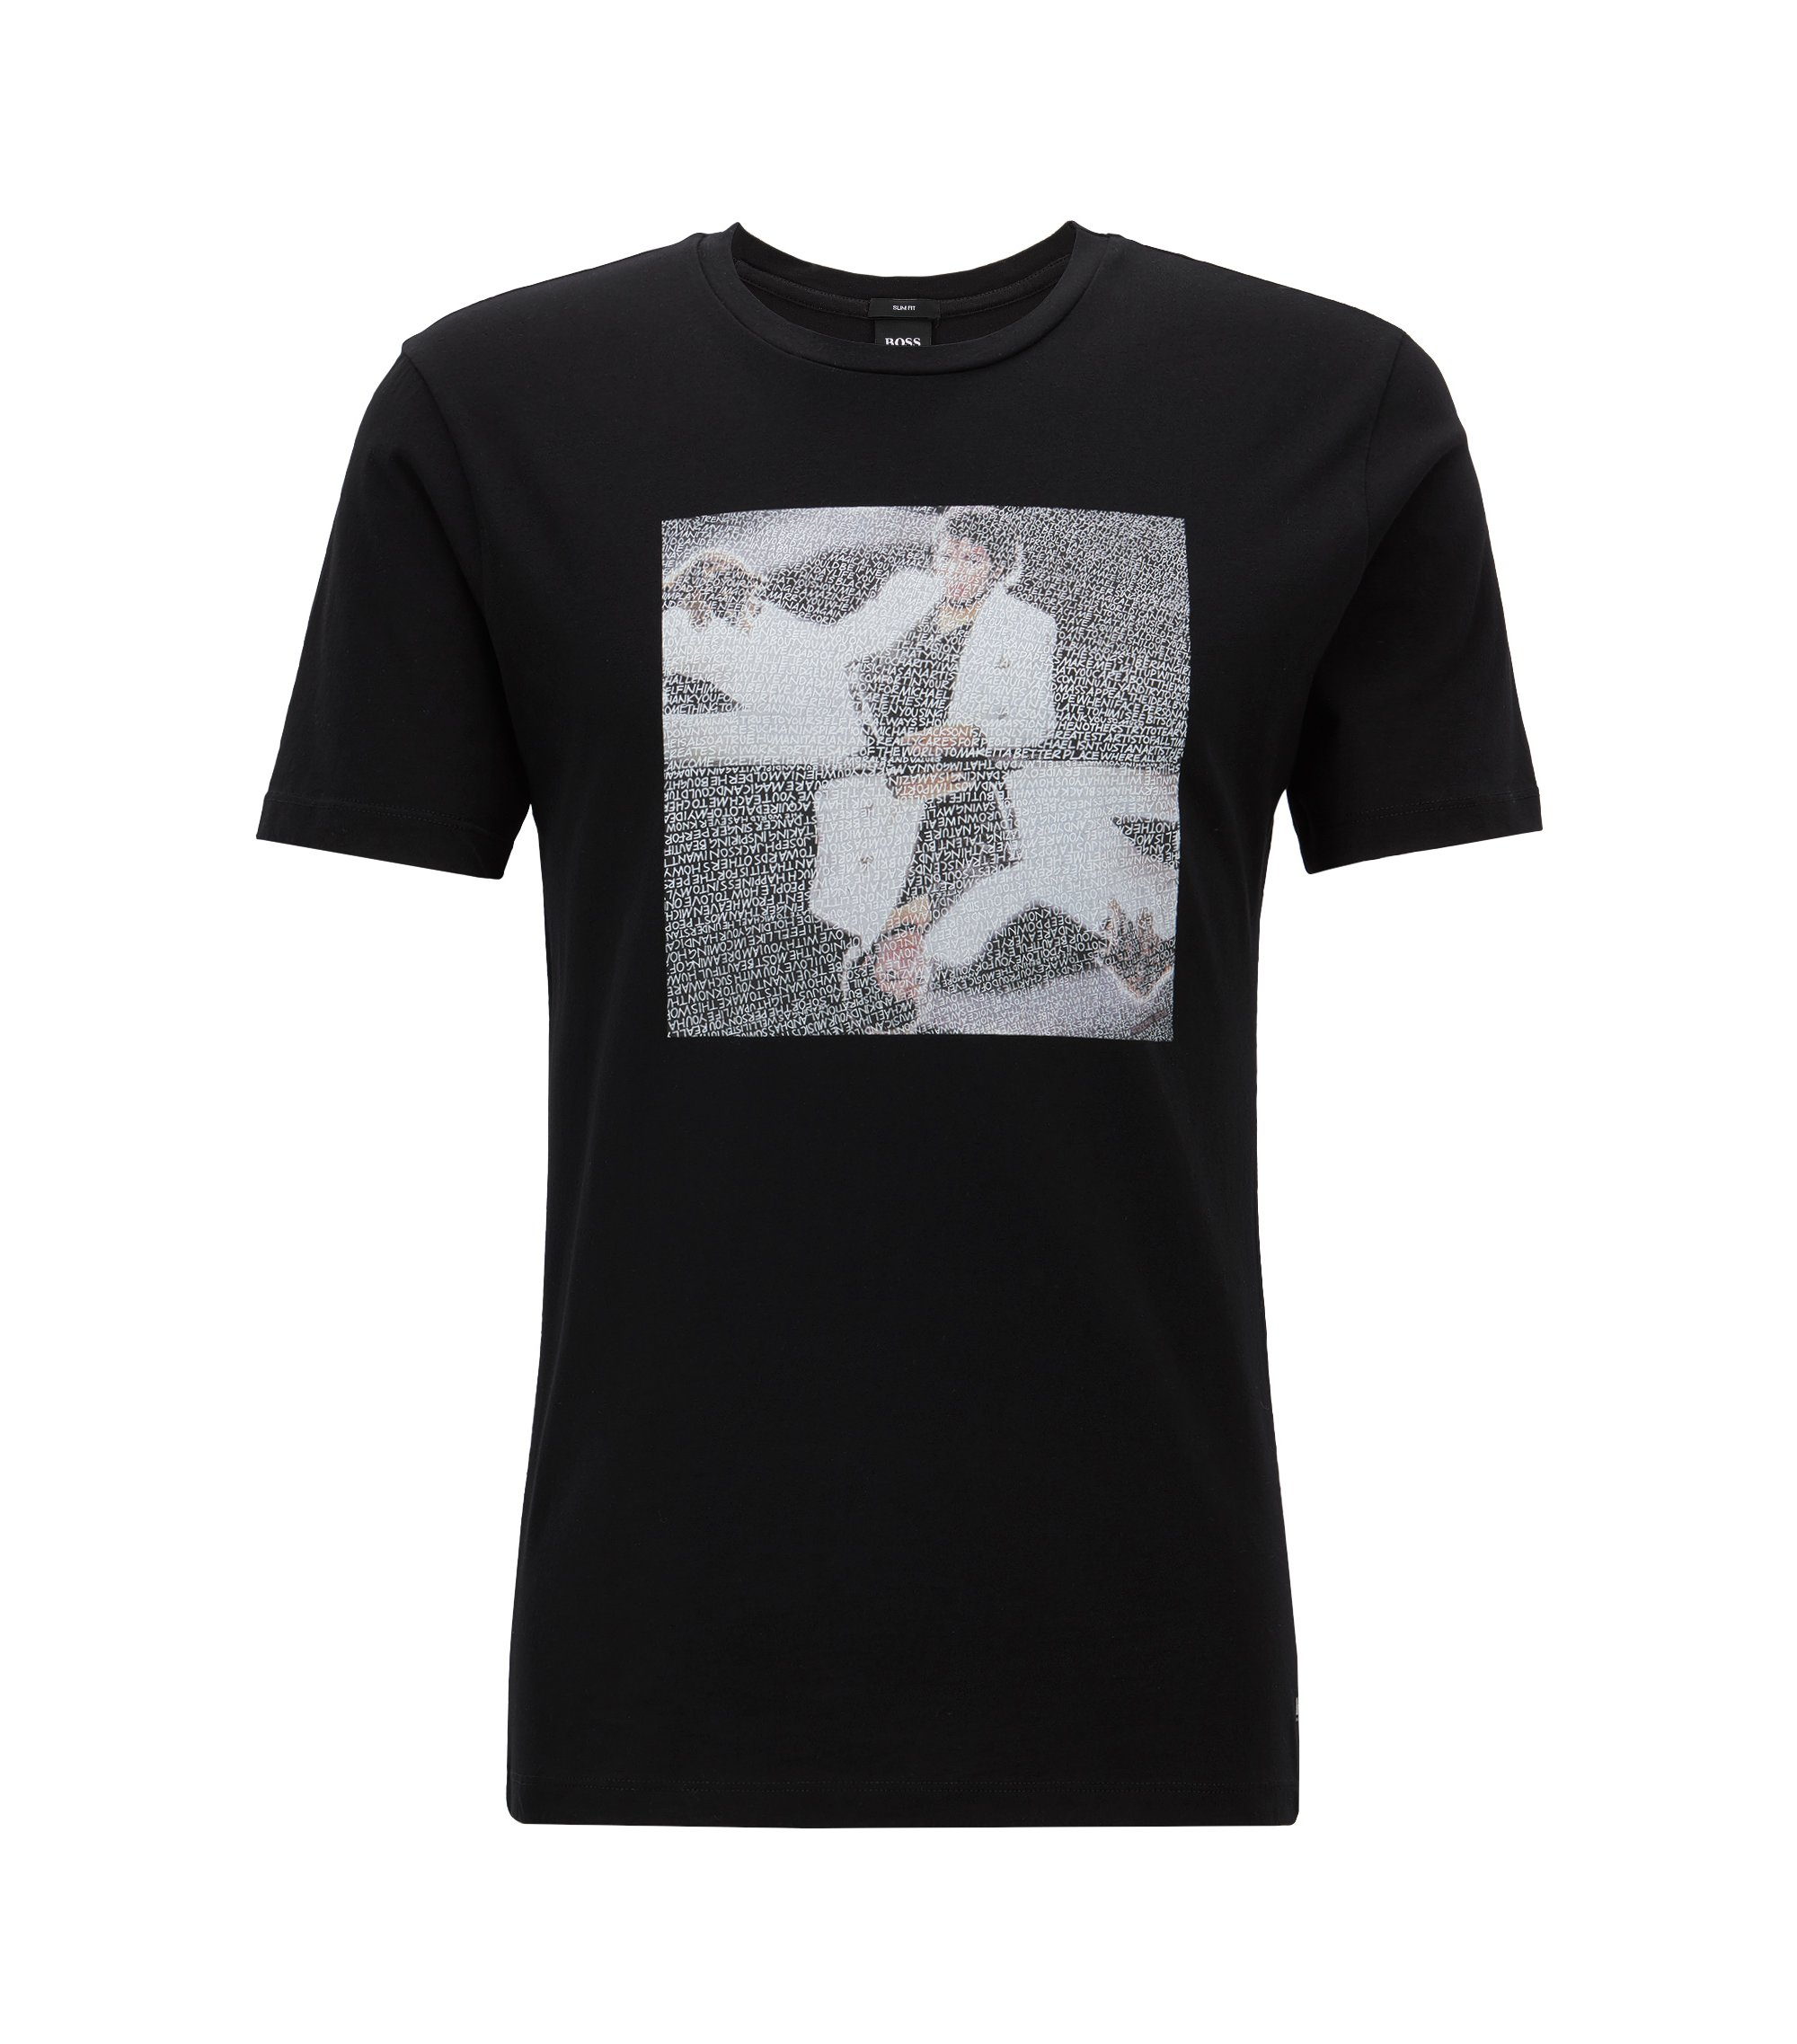 Unisex cotton T-shirt with Michael Jackson art print, Black